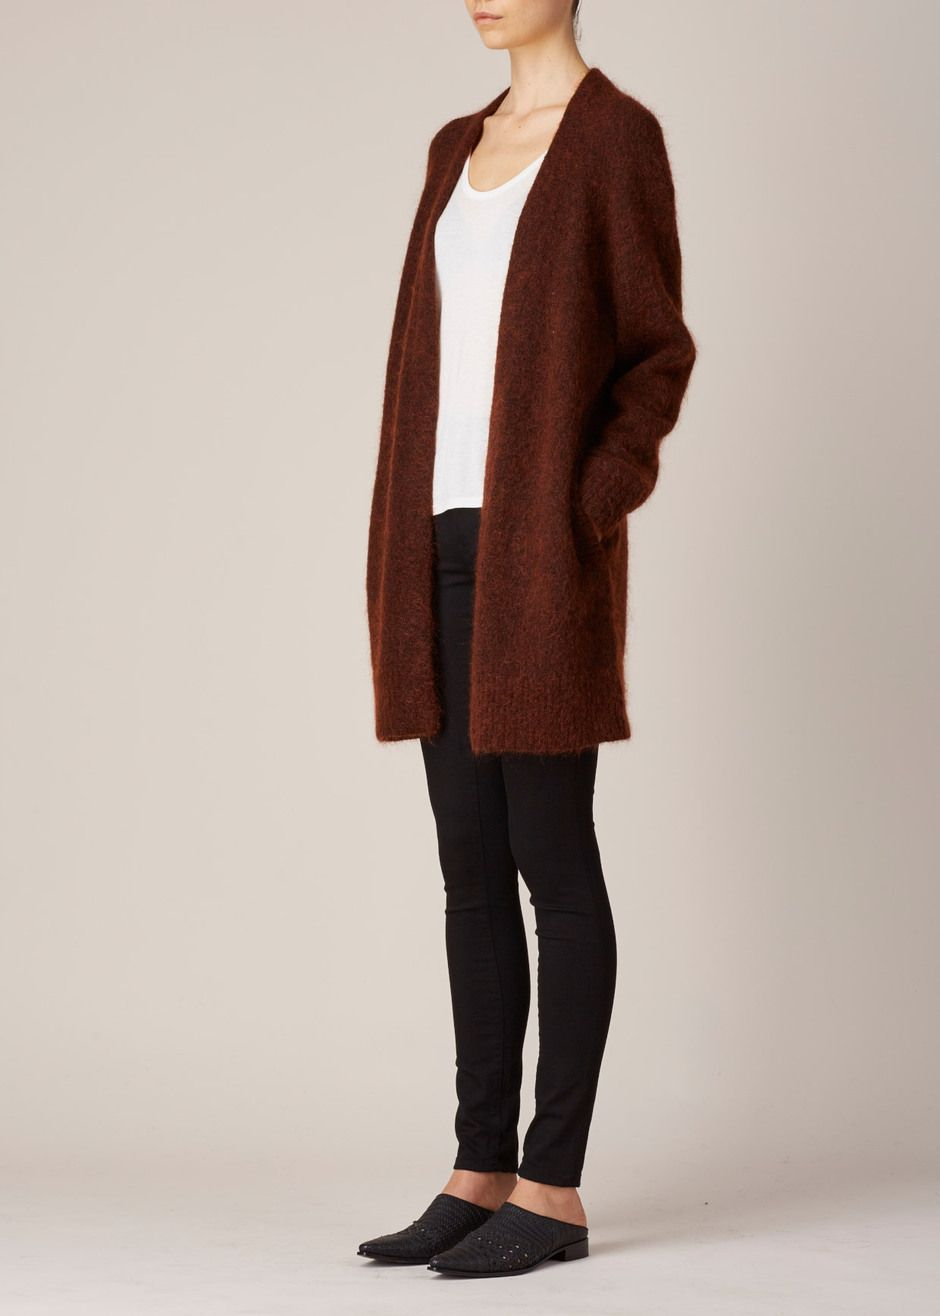 Acne Studios Raya Mohair Cardigan (Rust Brown) | Clothes ...